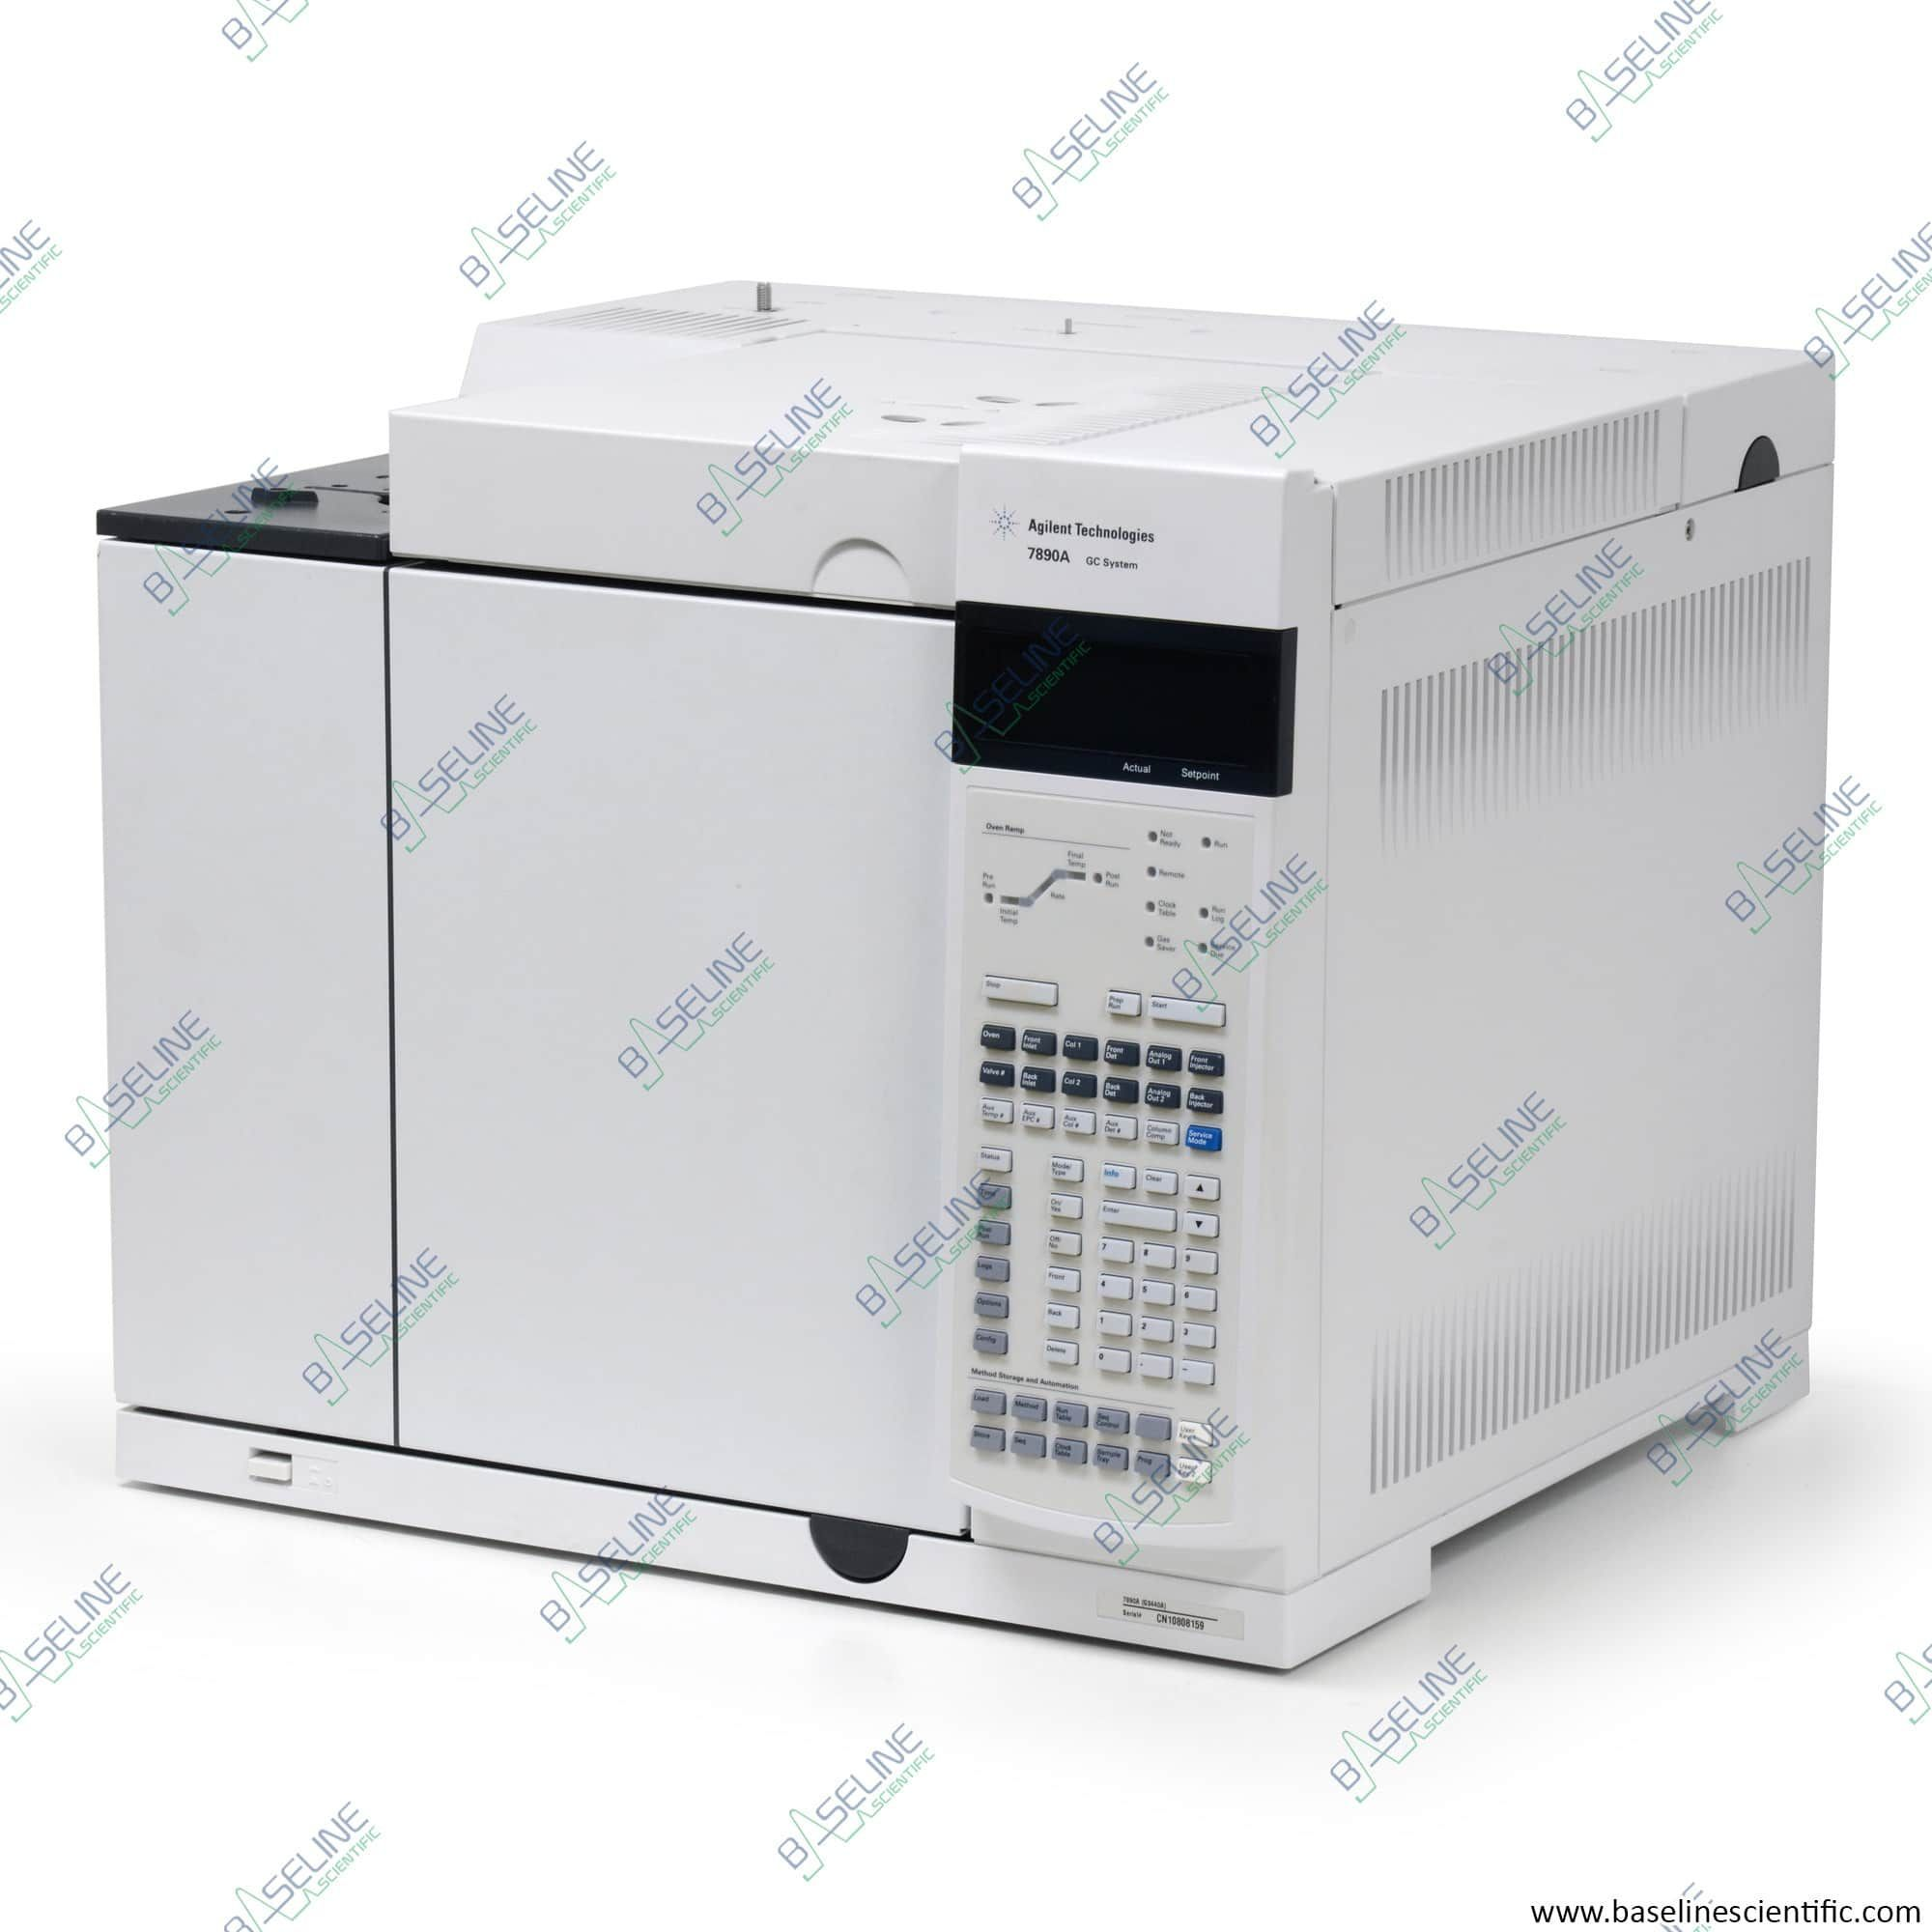 Refurbished Agilent 7890A GC Dual FIDs Dual SSL Inlets with ONE YEAR WARRANTY